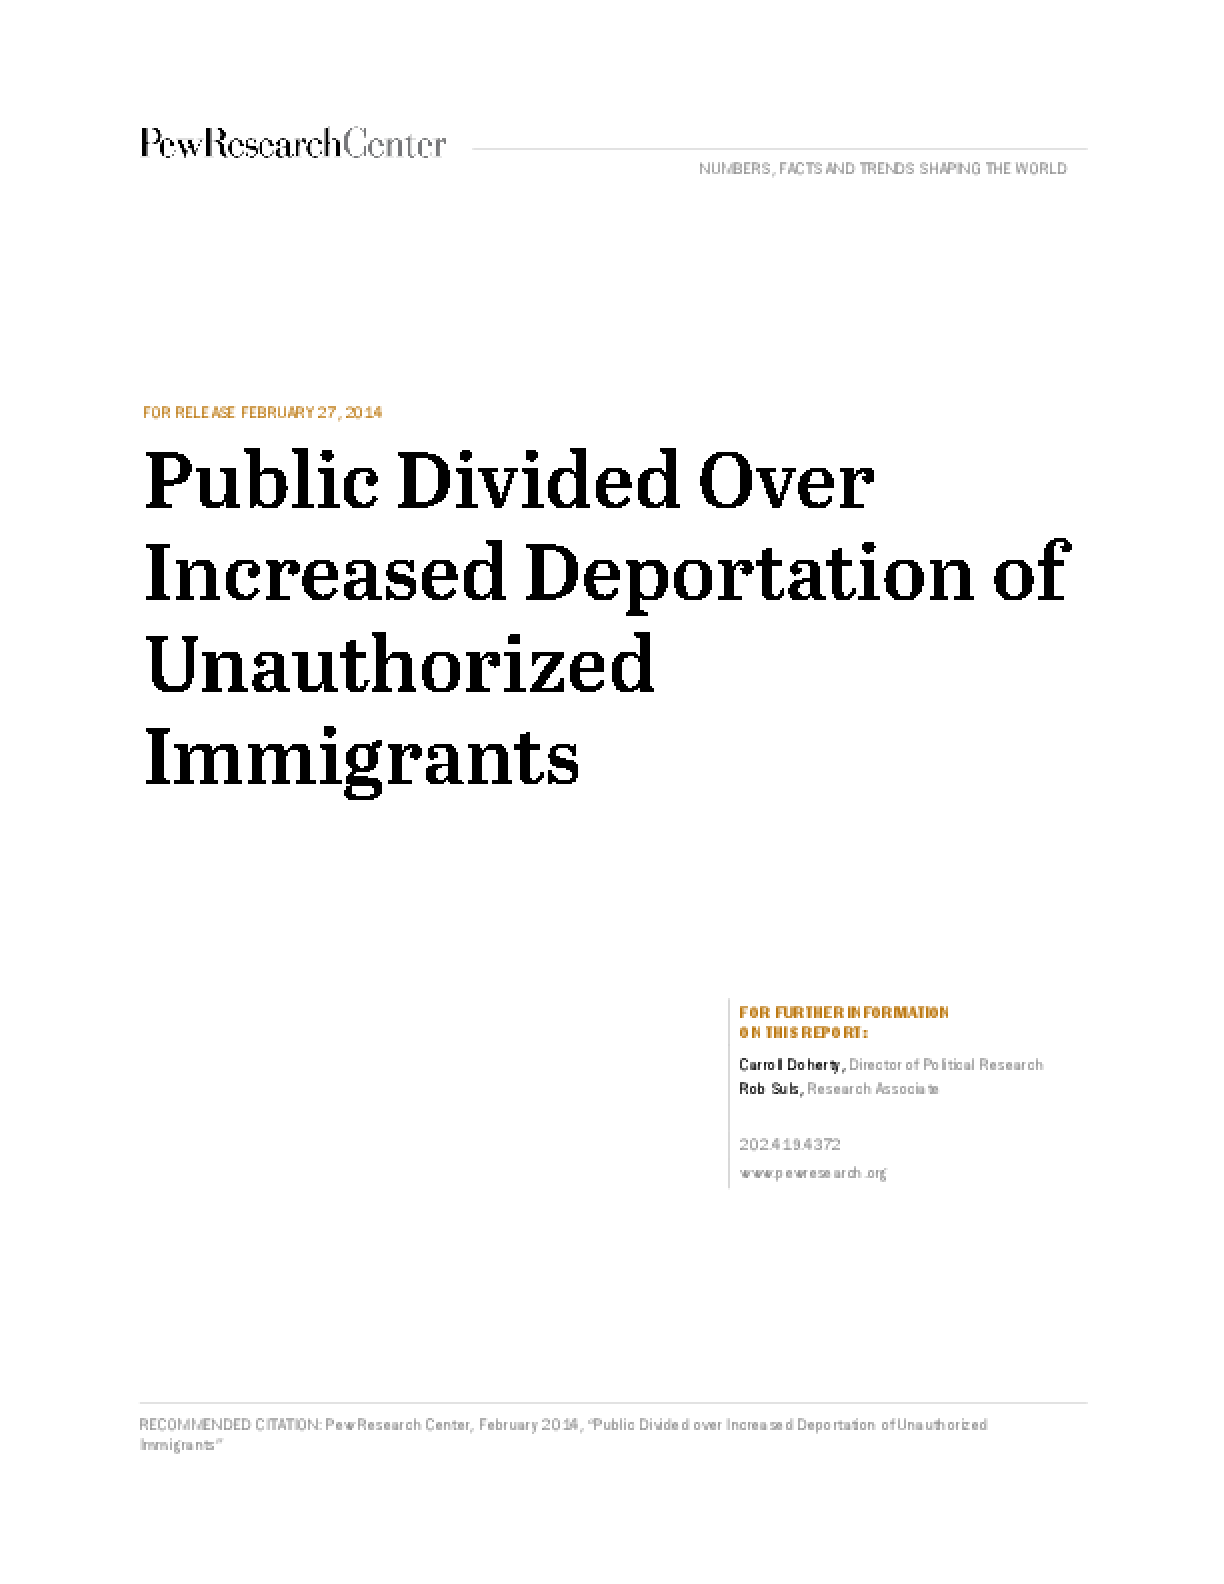 Public Divided Over Increased Deportation of Unauthorized Immigrants